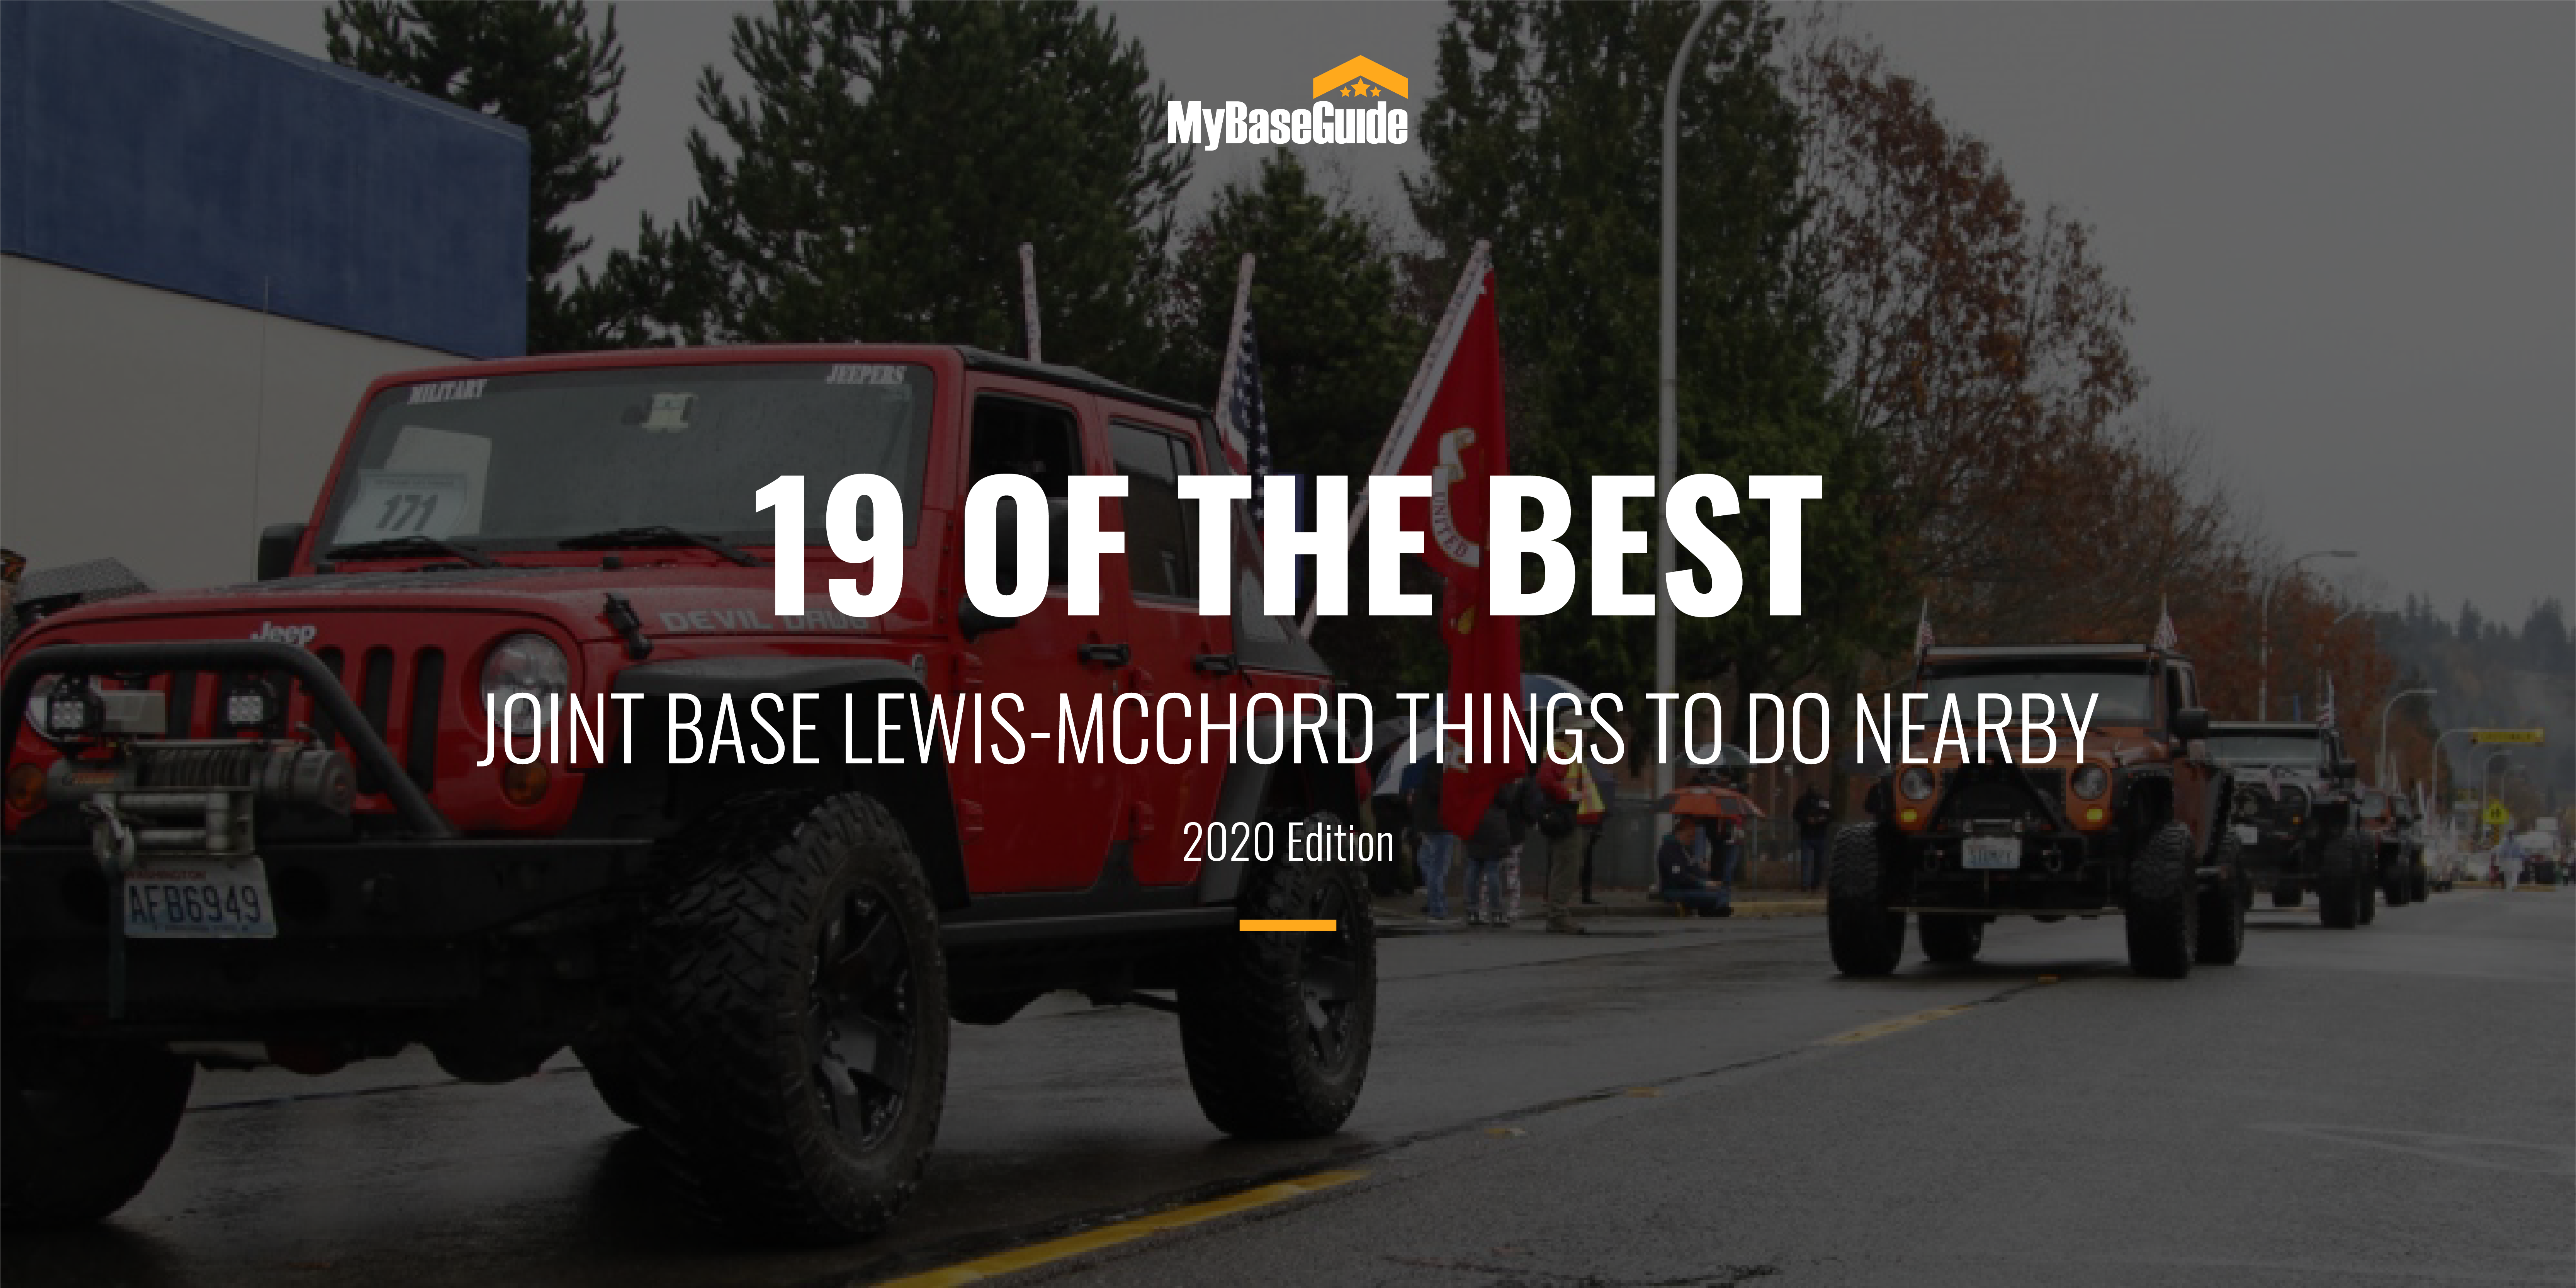 19 of the Best Joint Base Lewis Mcchord Things to Do Nearby